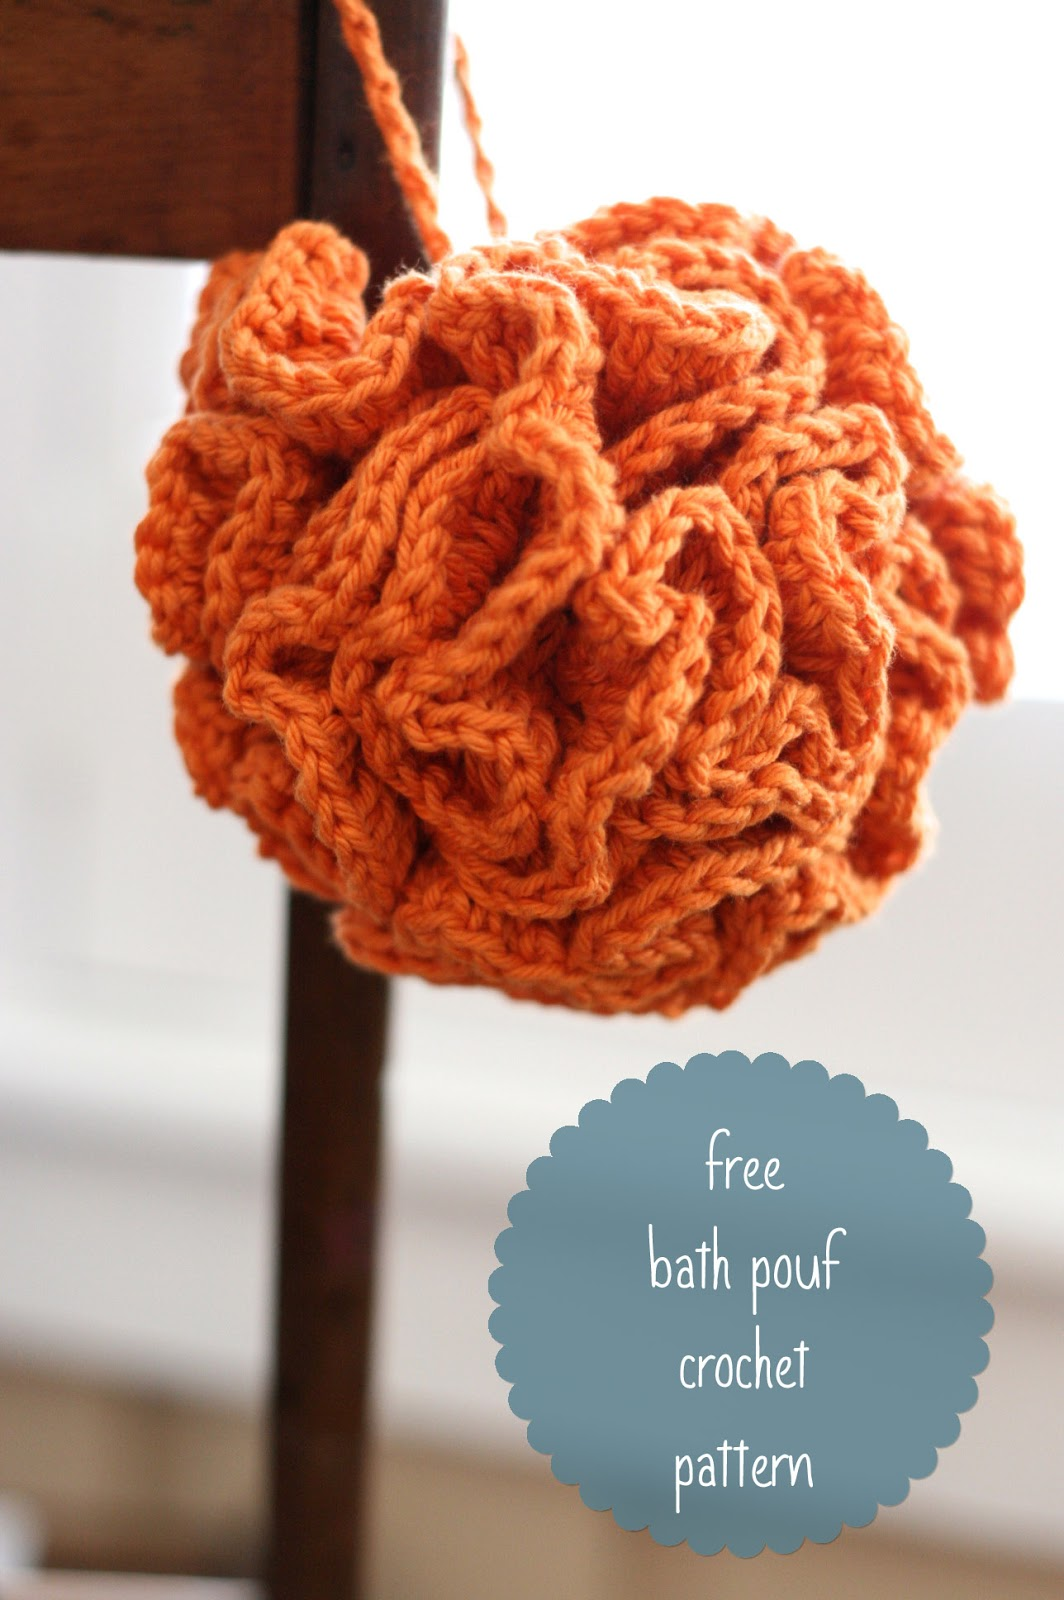 Free Crochet Pattern For Bath Pouf : Database Error